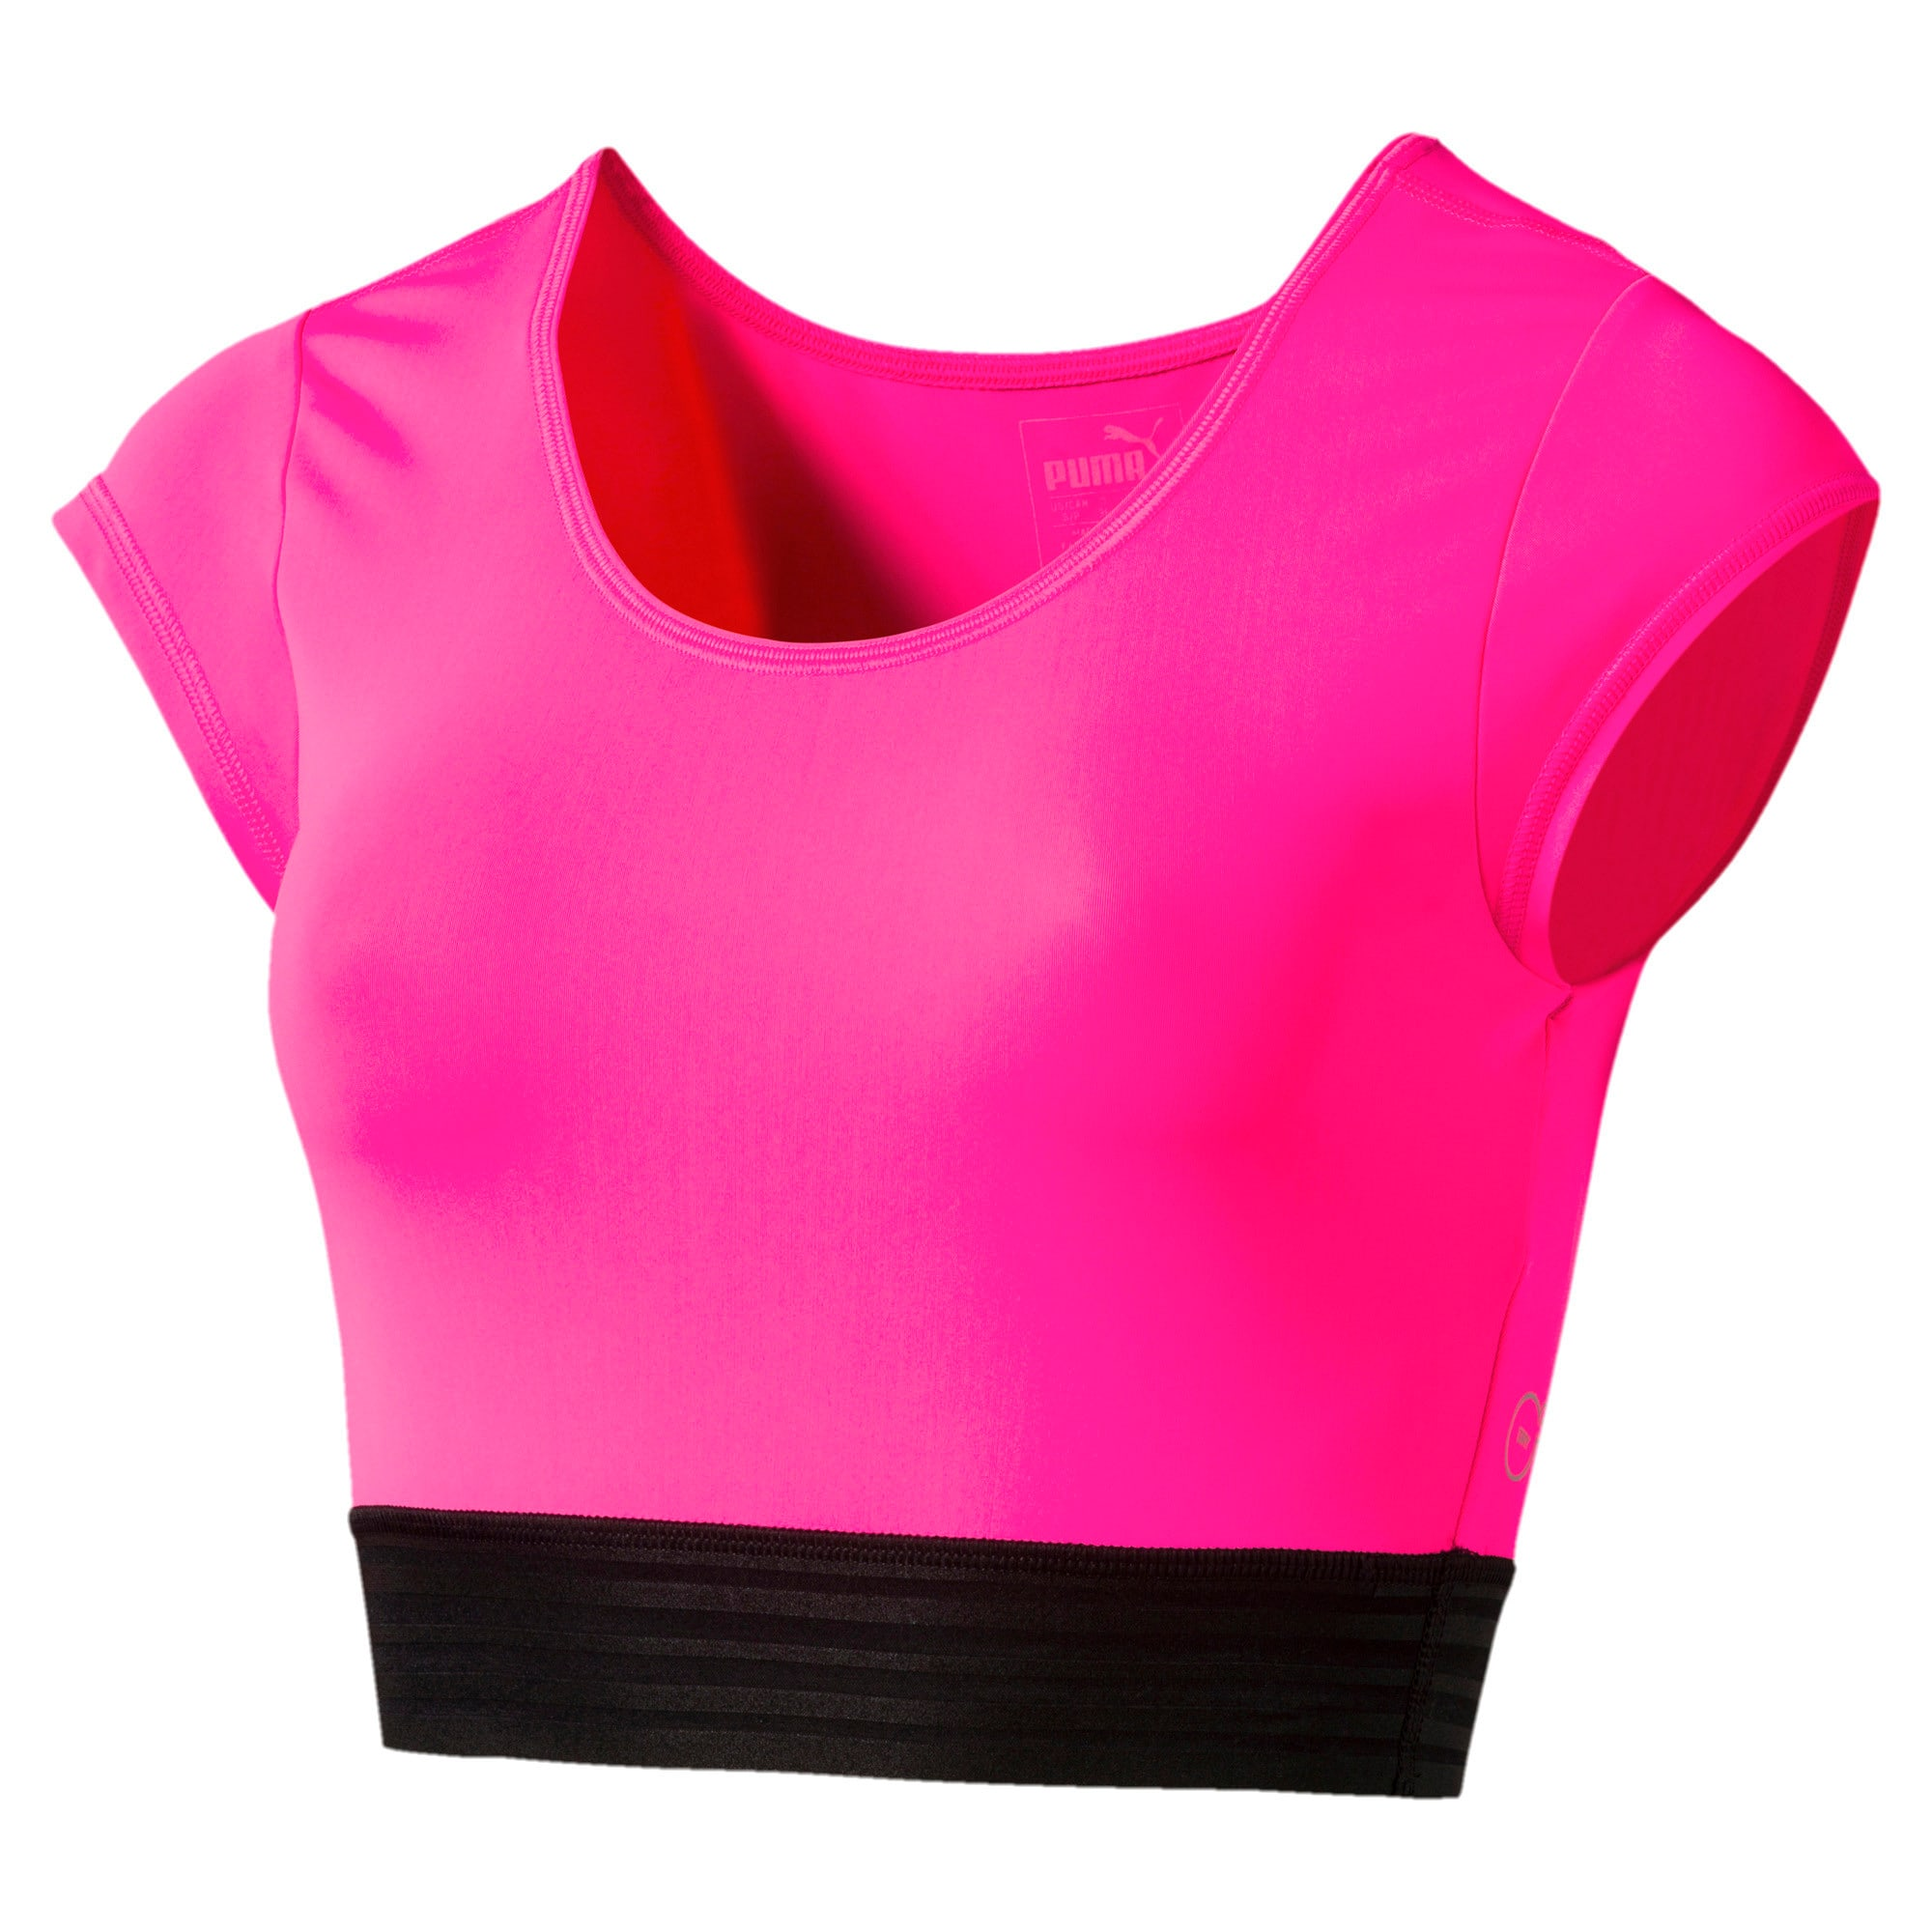 Thumbnail 3 of Active Training Women's Explosive Crop Top, KNOCKOUT PINK, medium-IND